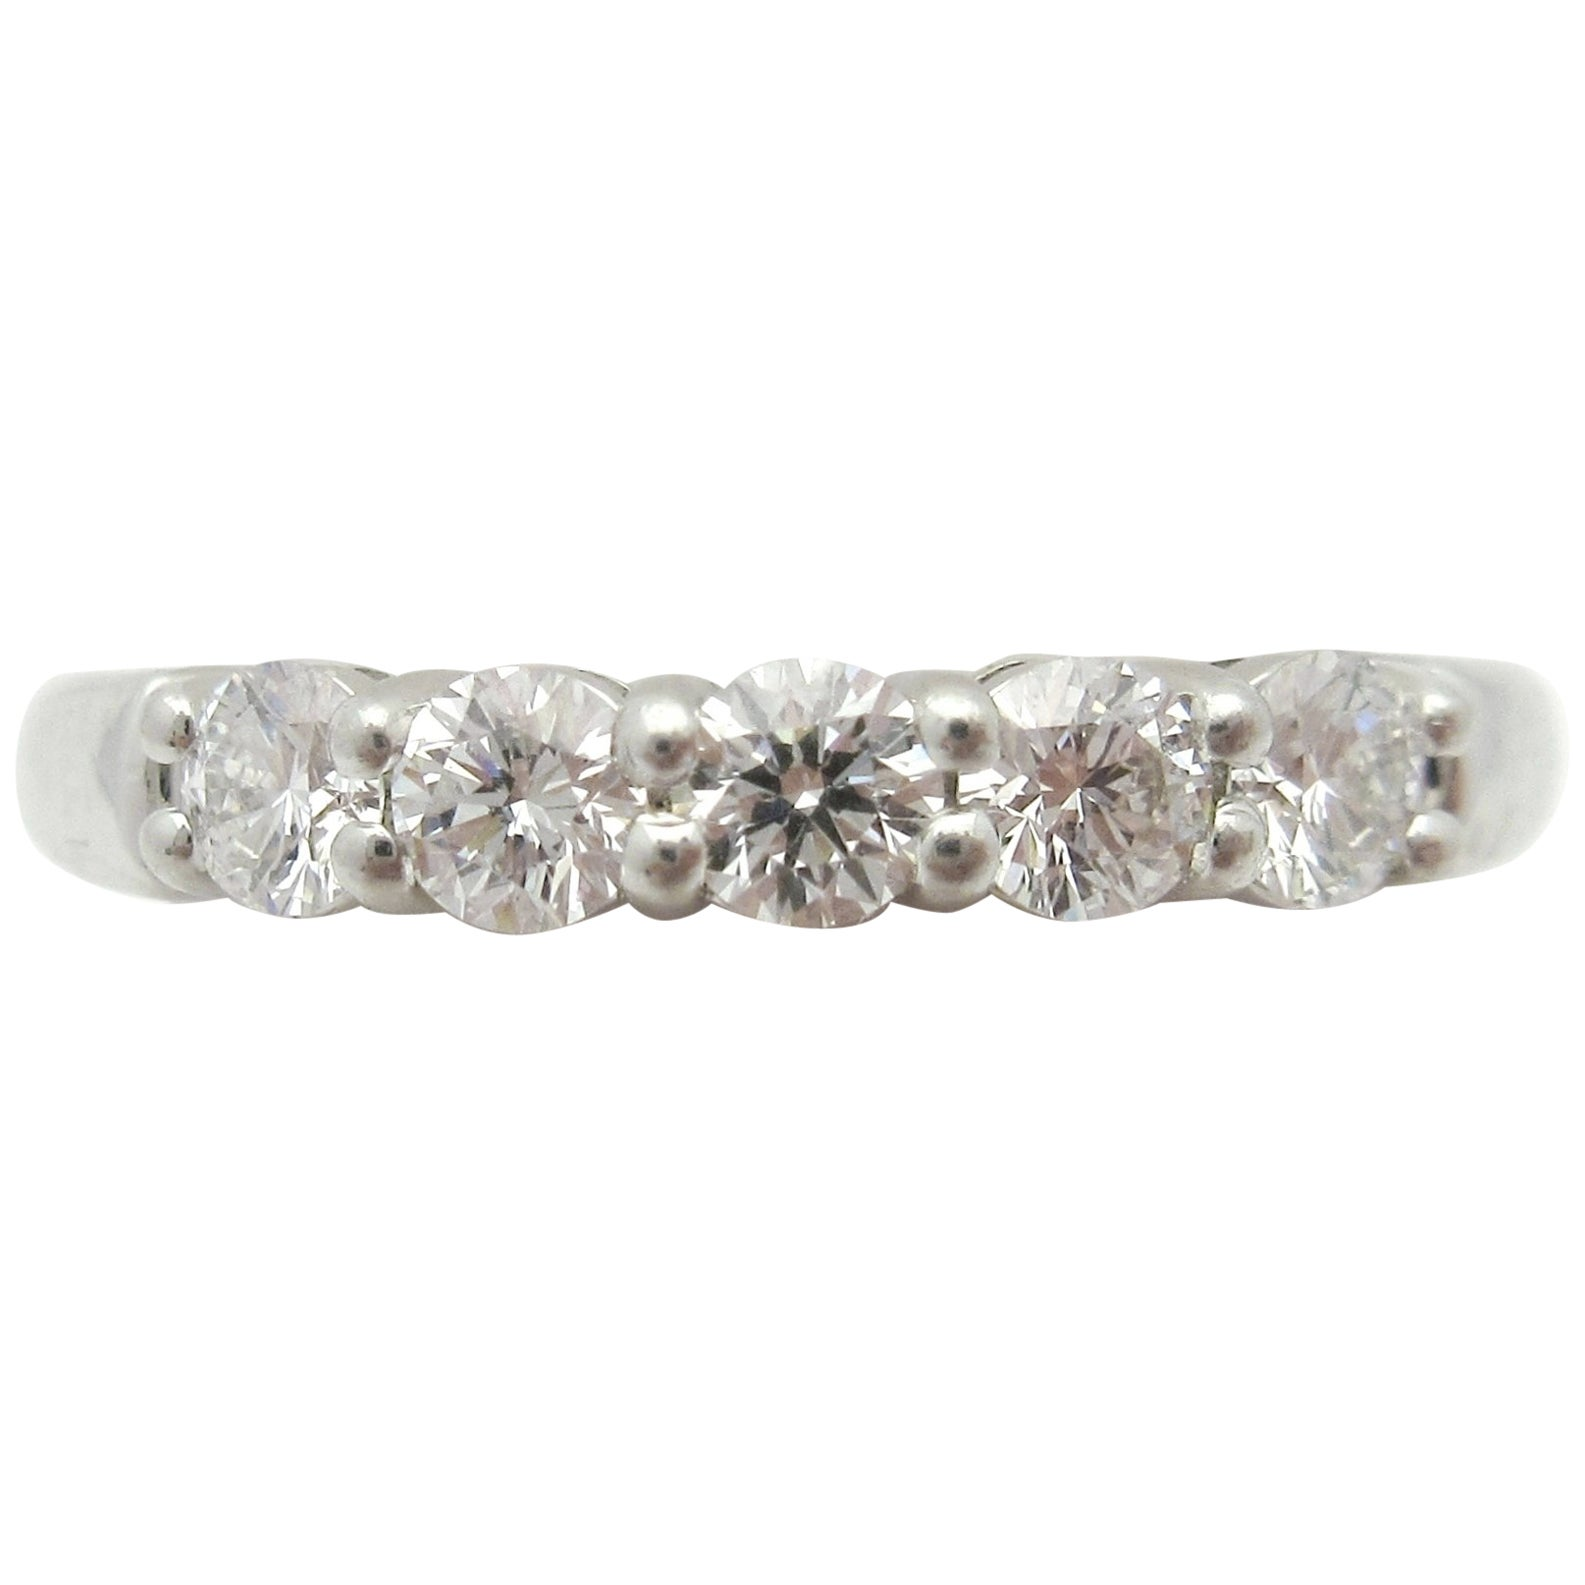 04408b83d Estate Tiffany and Co. Embrace Five-Stone Diamond Wedding Band Platinum For  Sale at 1stdibs